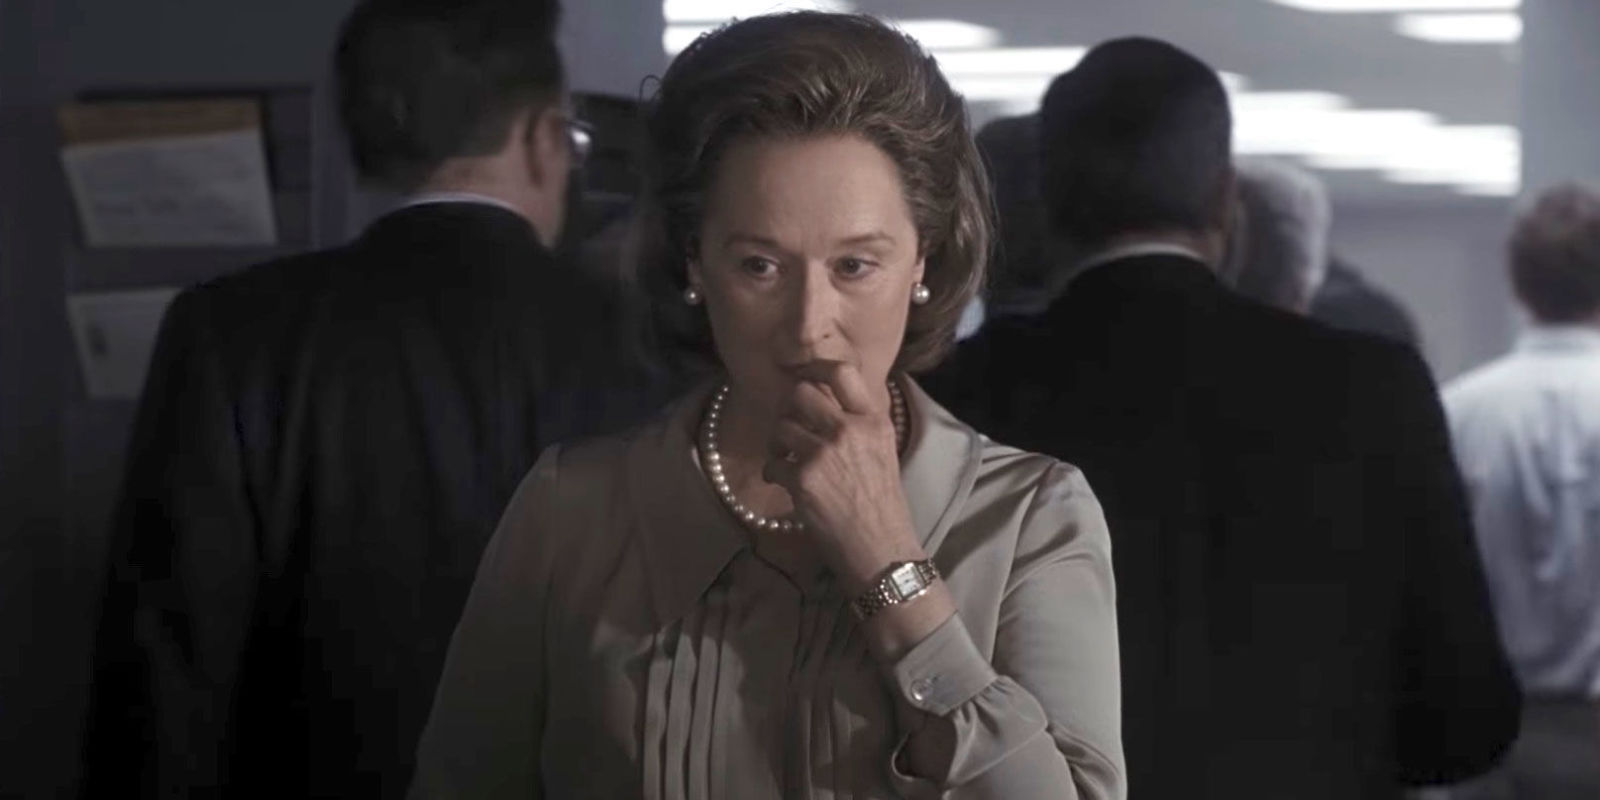 Meryl Streep in the Boy's Club of Steven Spielberg's The Post